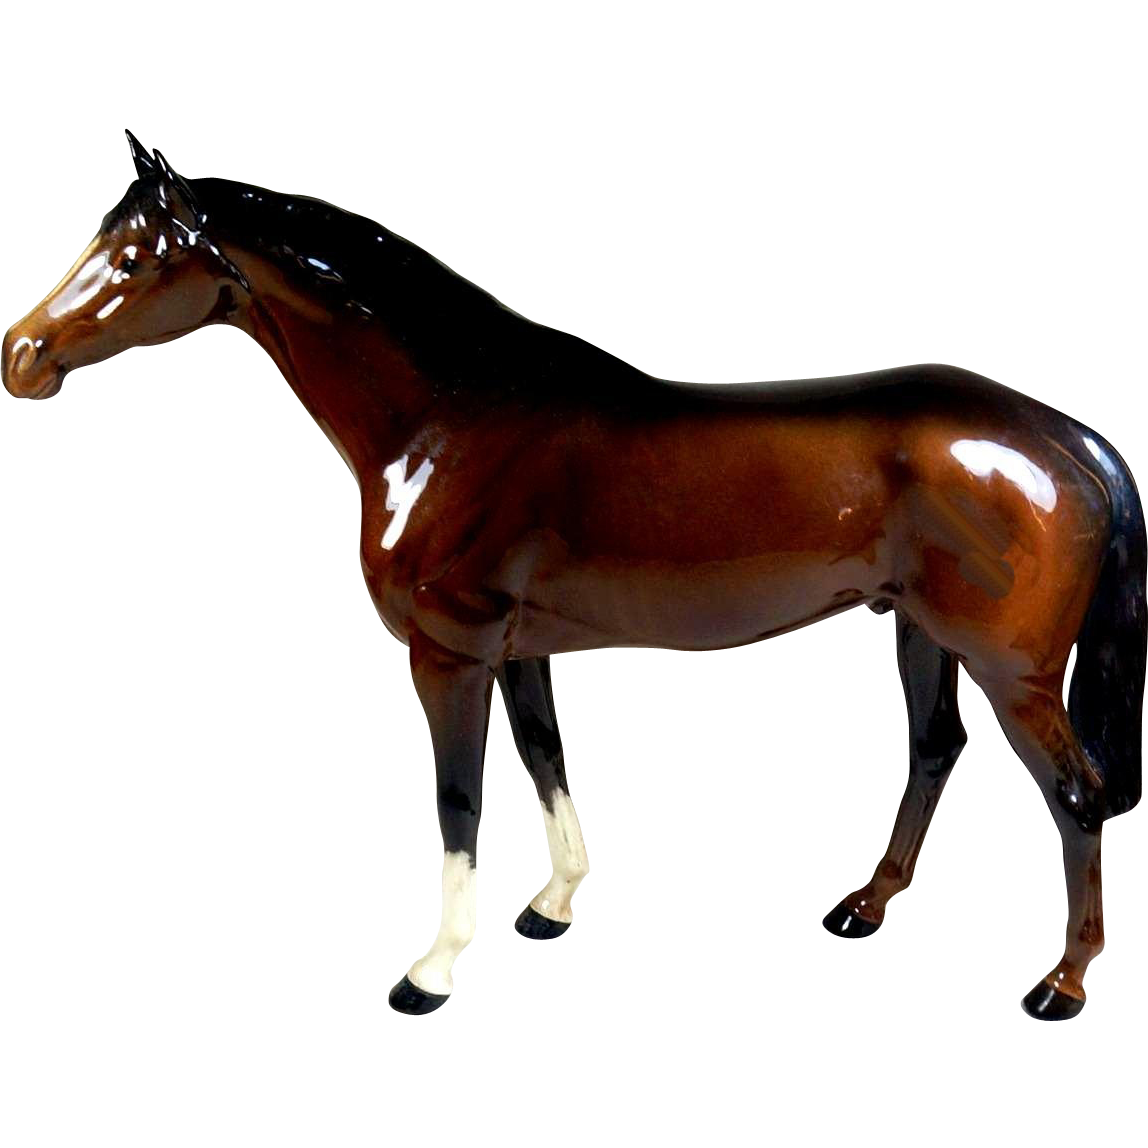 Beswick Brown Gloss Racehorse Figurine